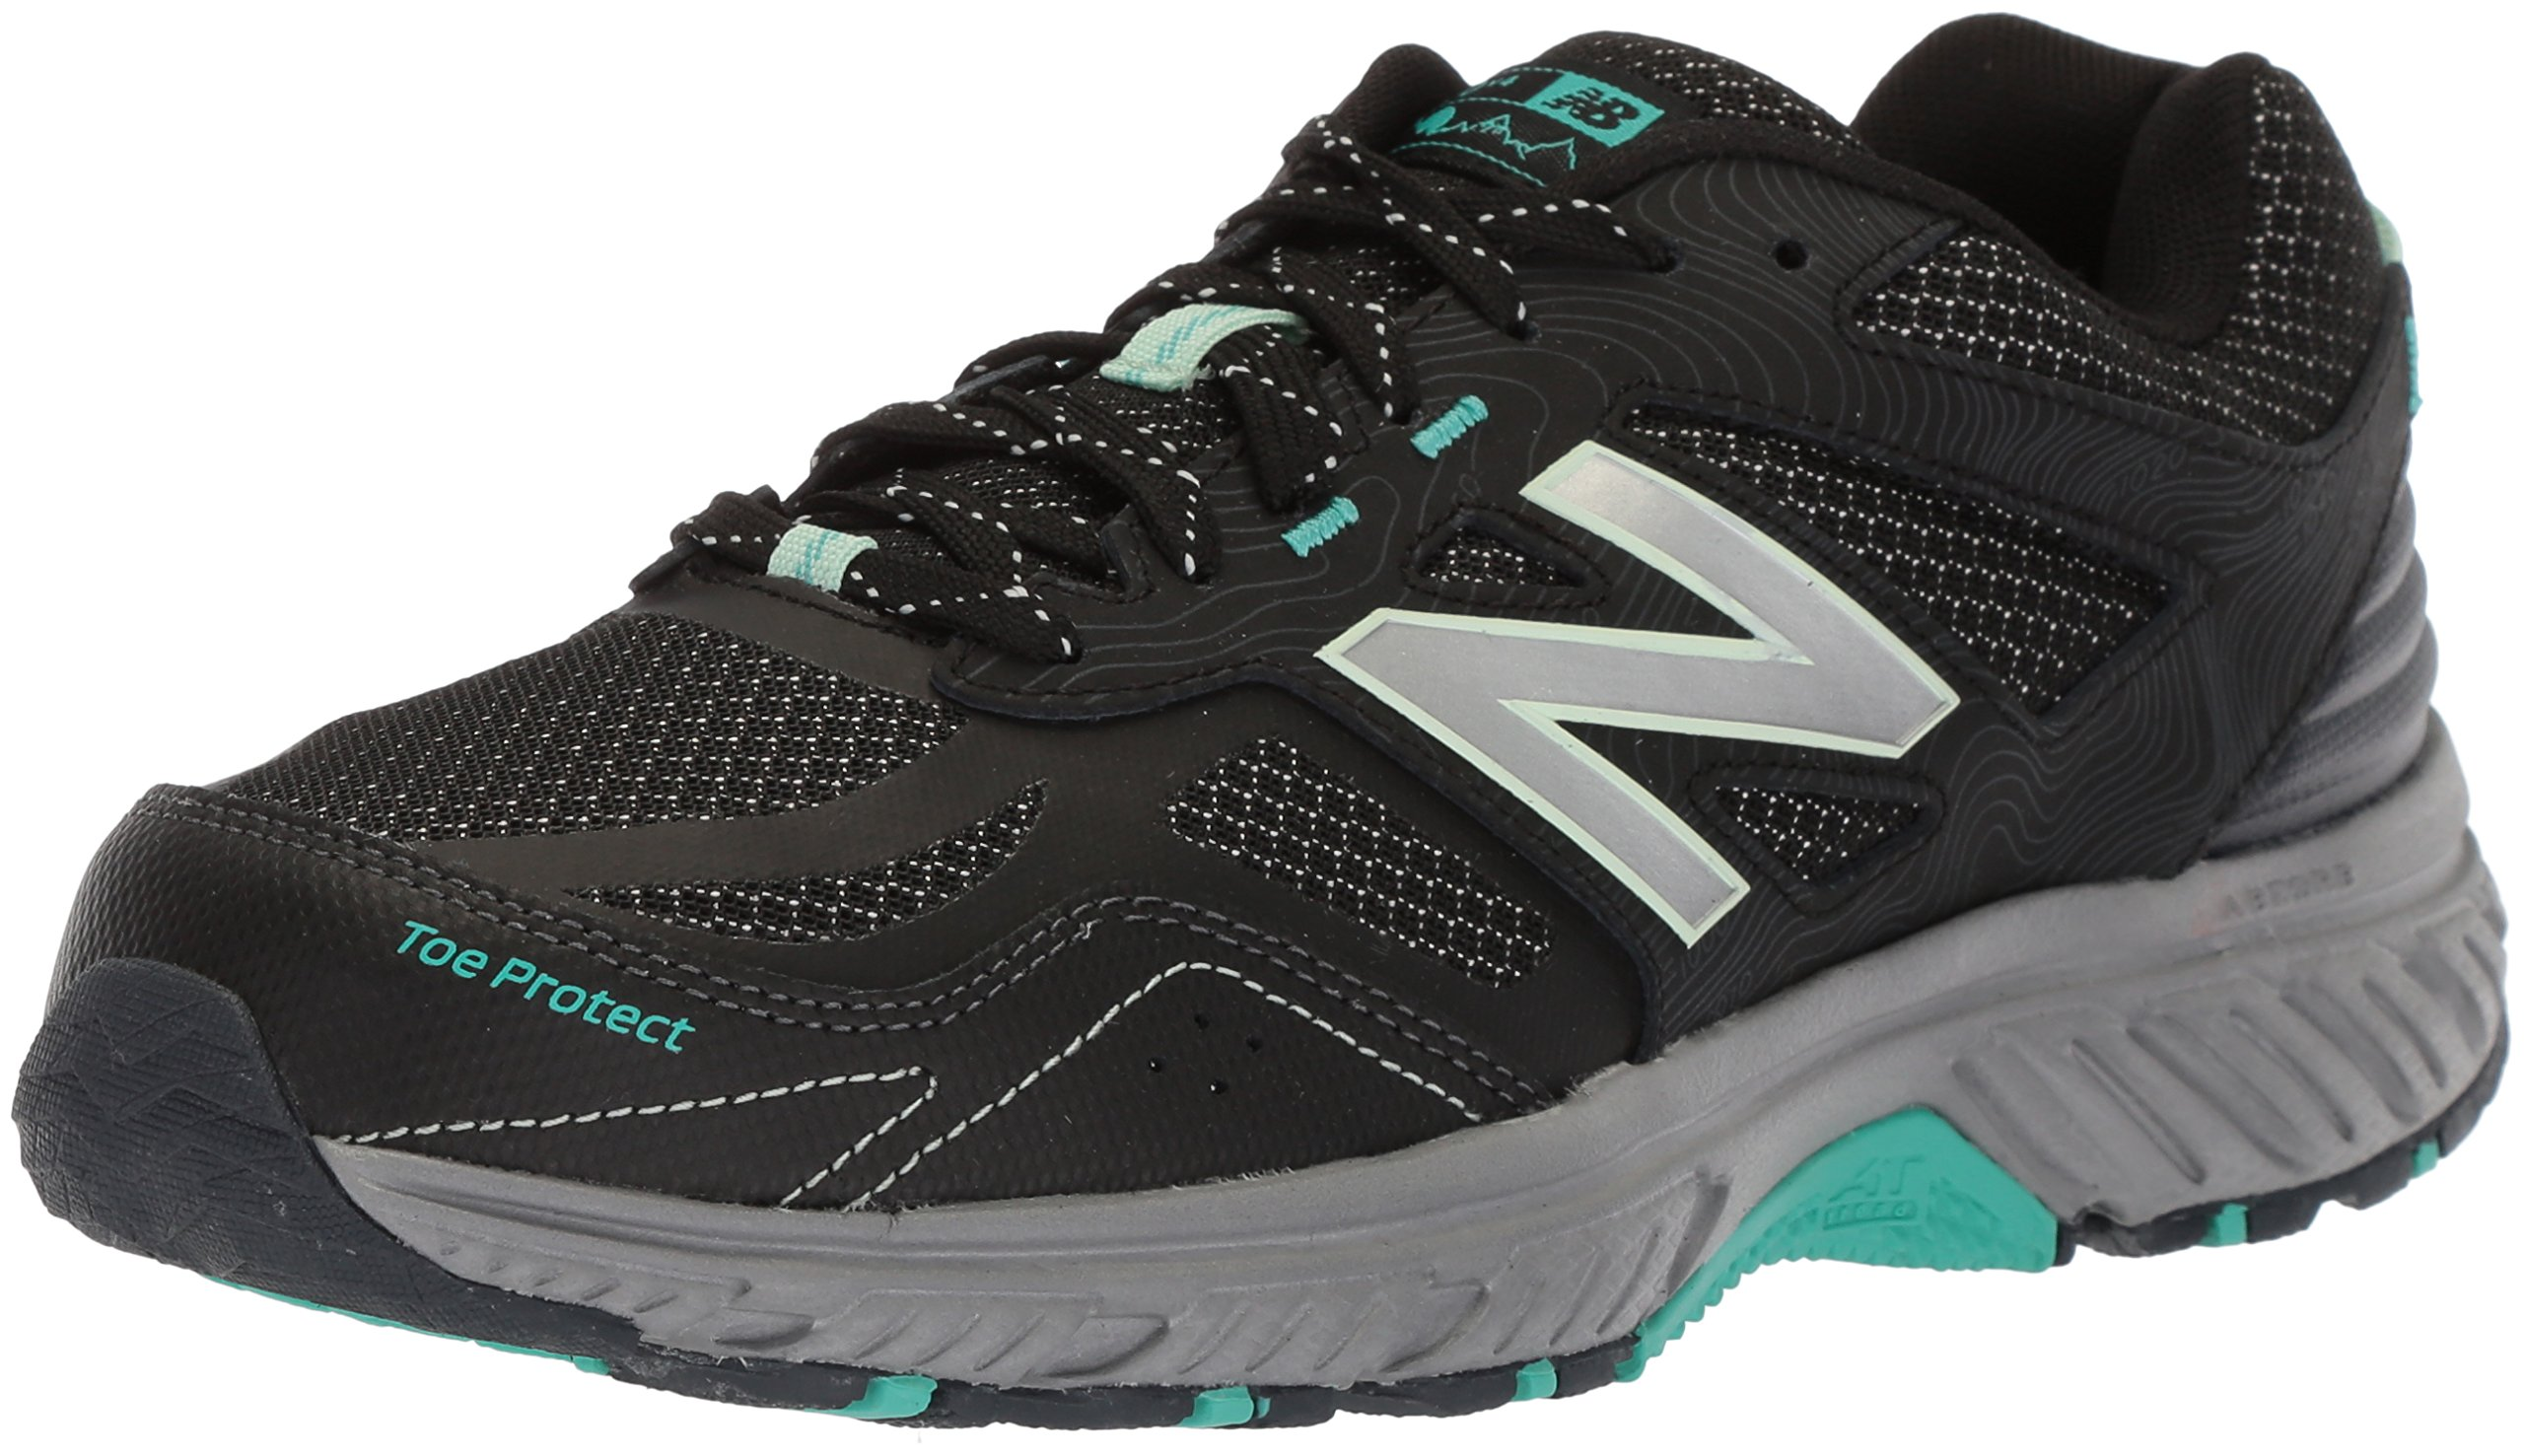 New Balance Women's 510v4 Cushioning Trail Running Shoe, Black, 9 D US